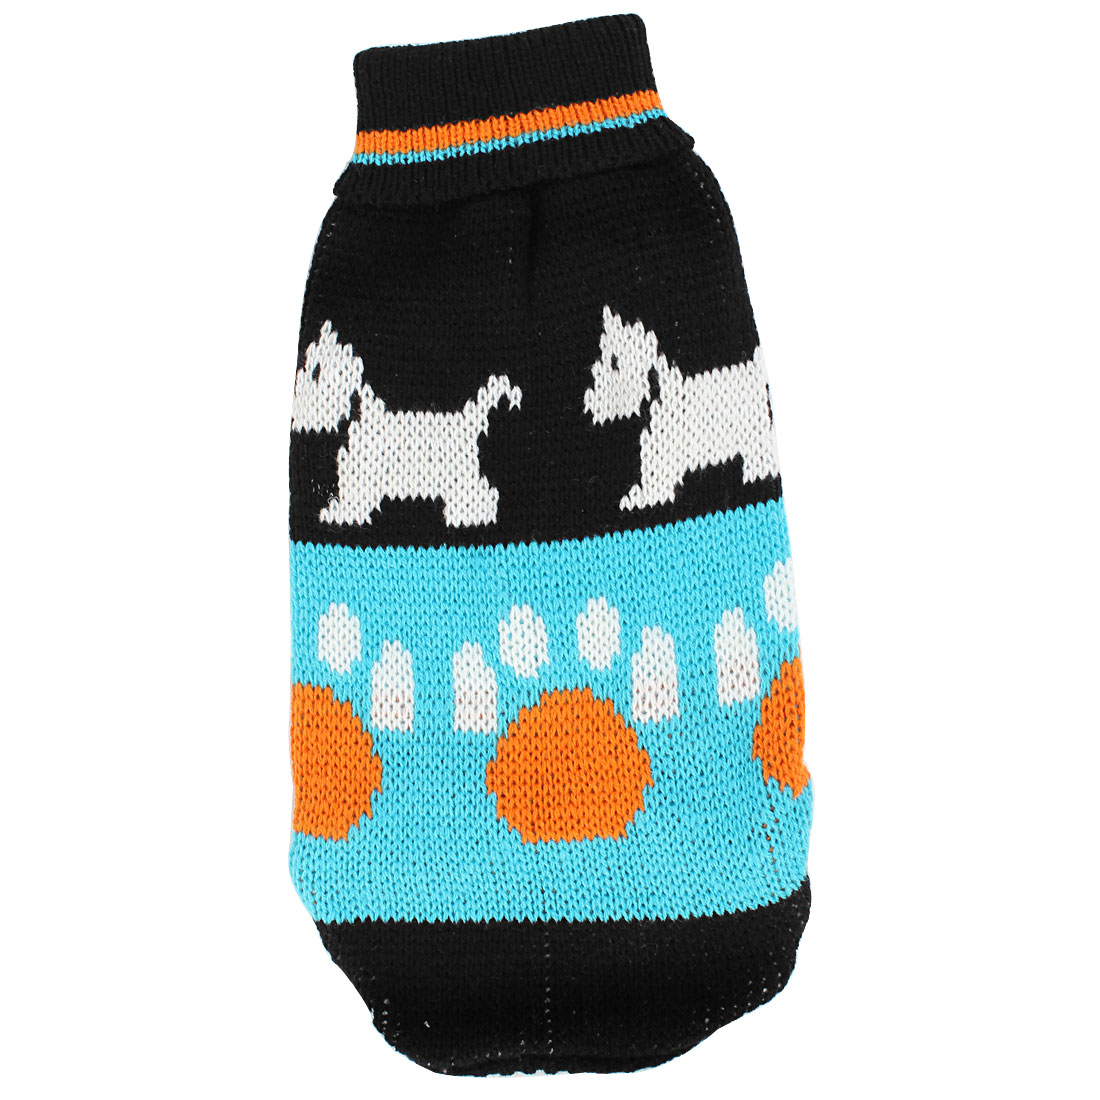 Pet Puppy Poodle Black Blue Ribbed Cuff Dog Pattern Knitwear Turtleneck Apparel Sweater Size XS